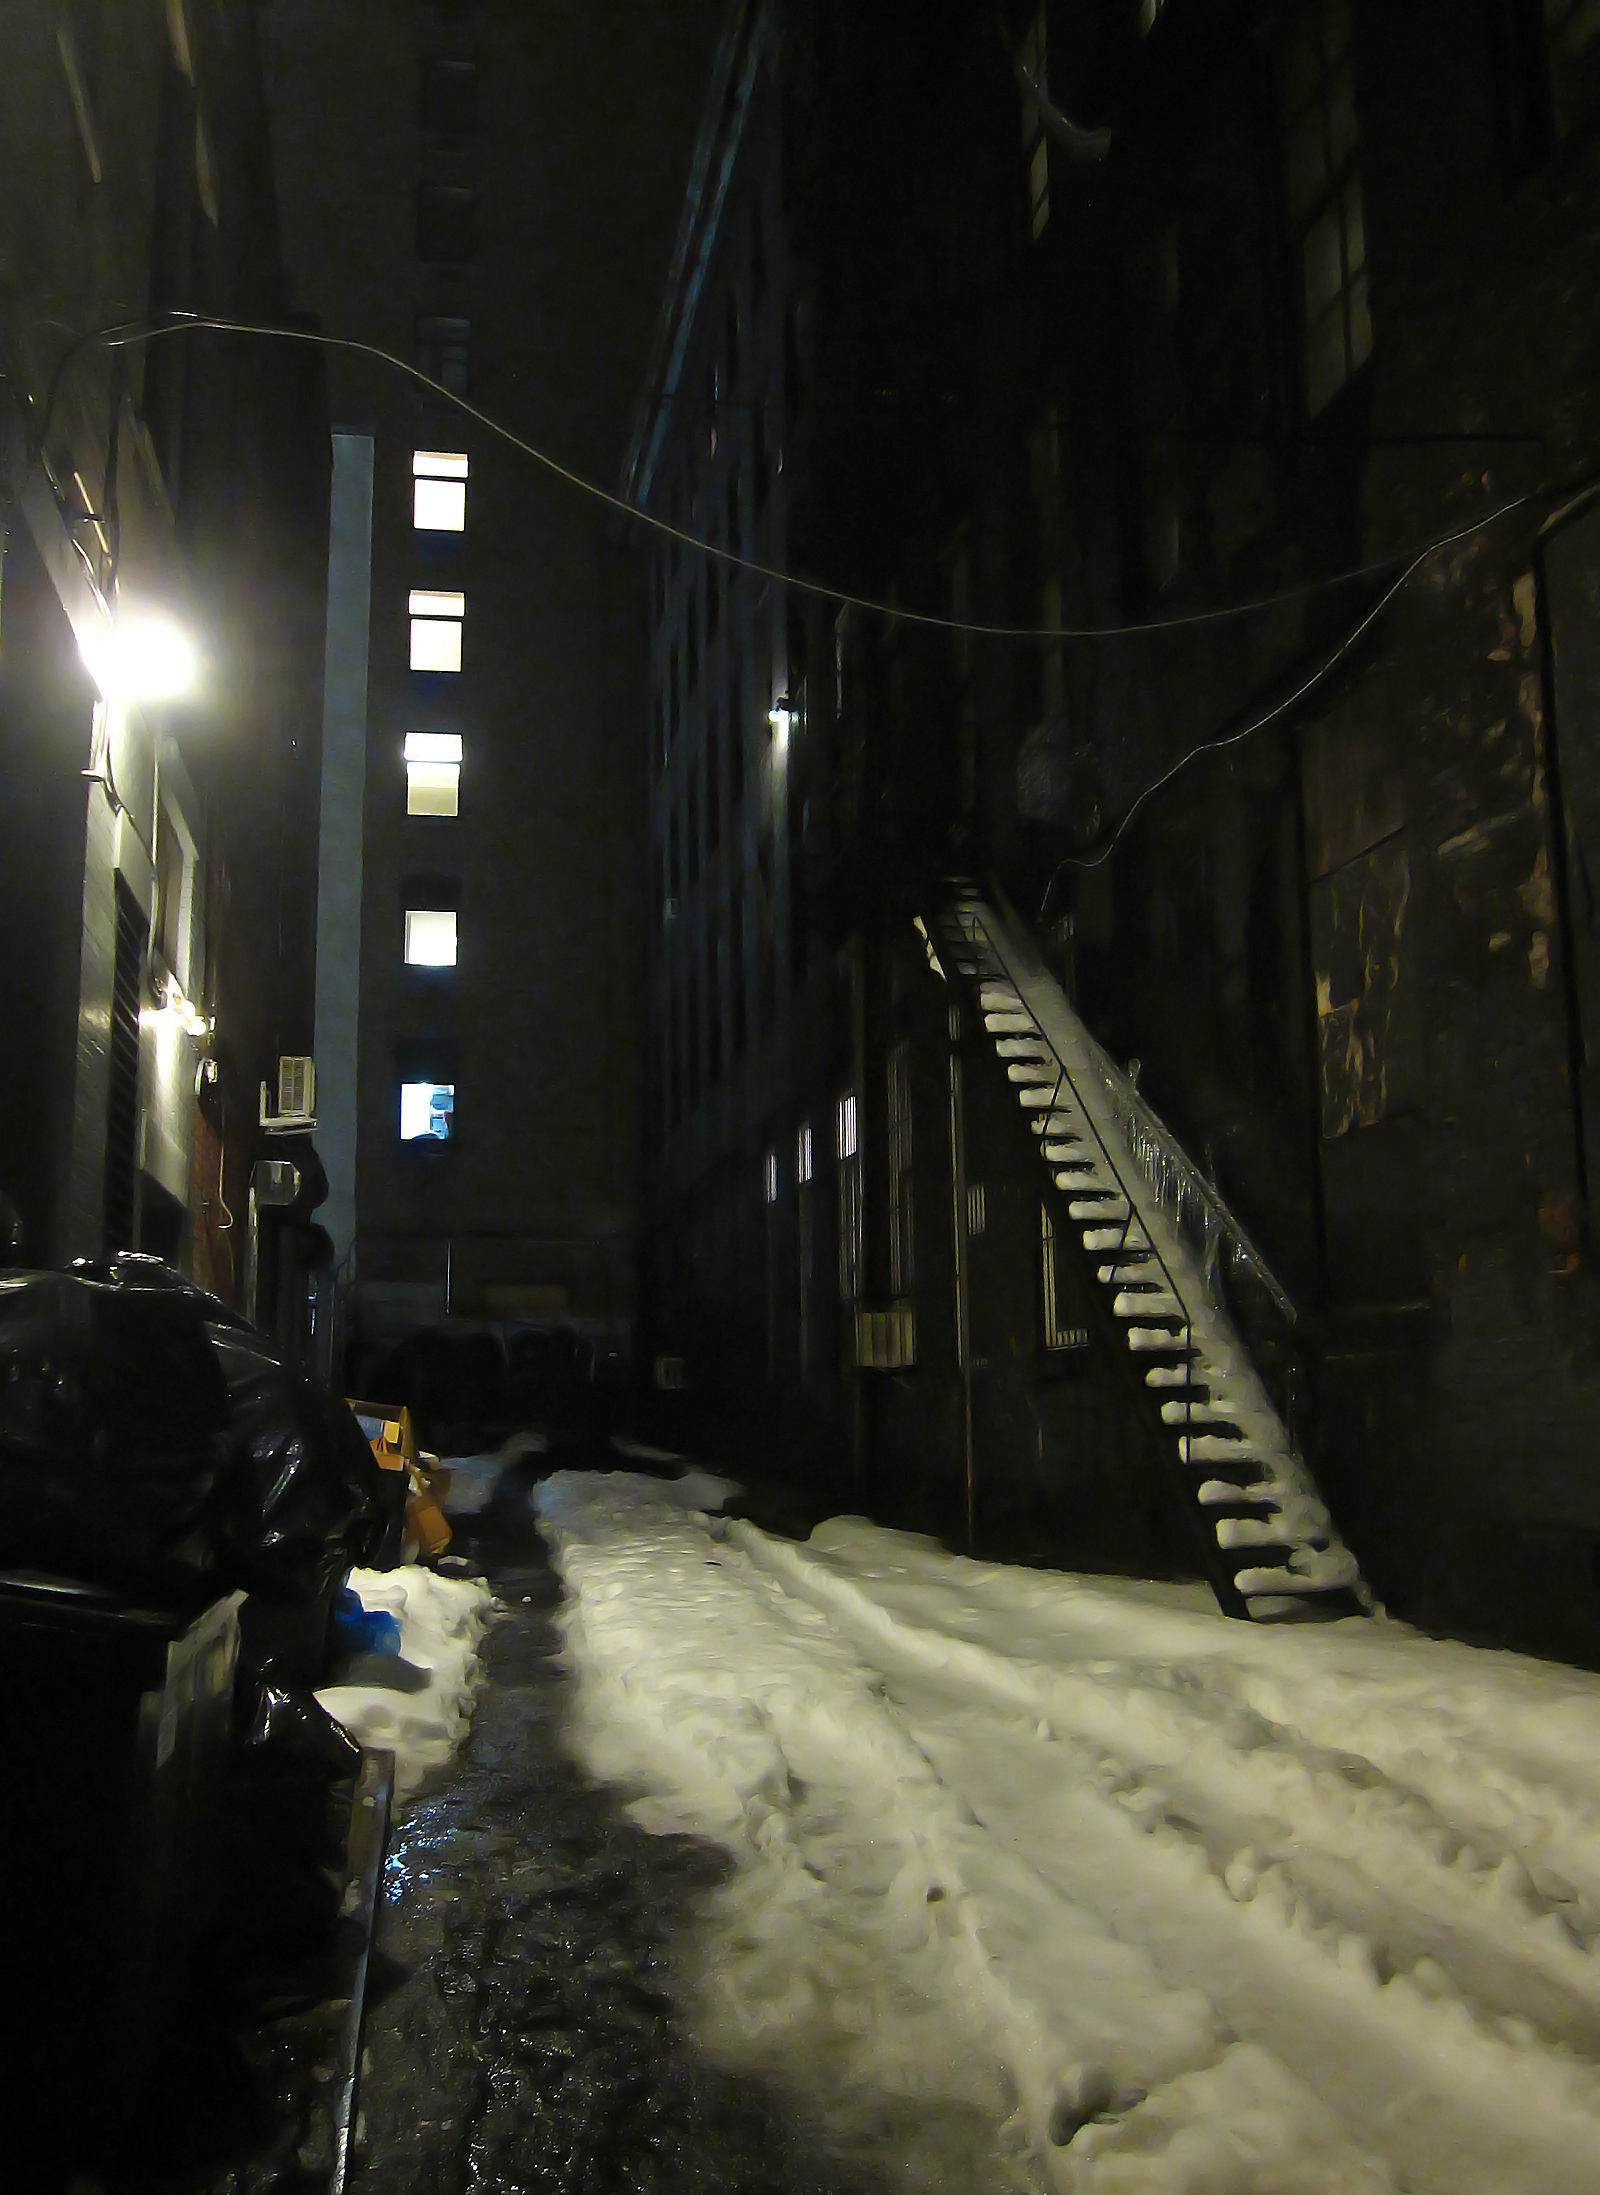 Fire escape and icicles